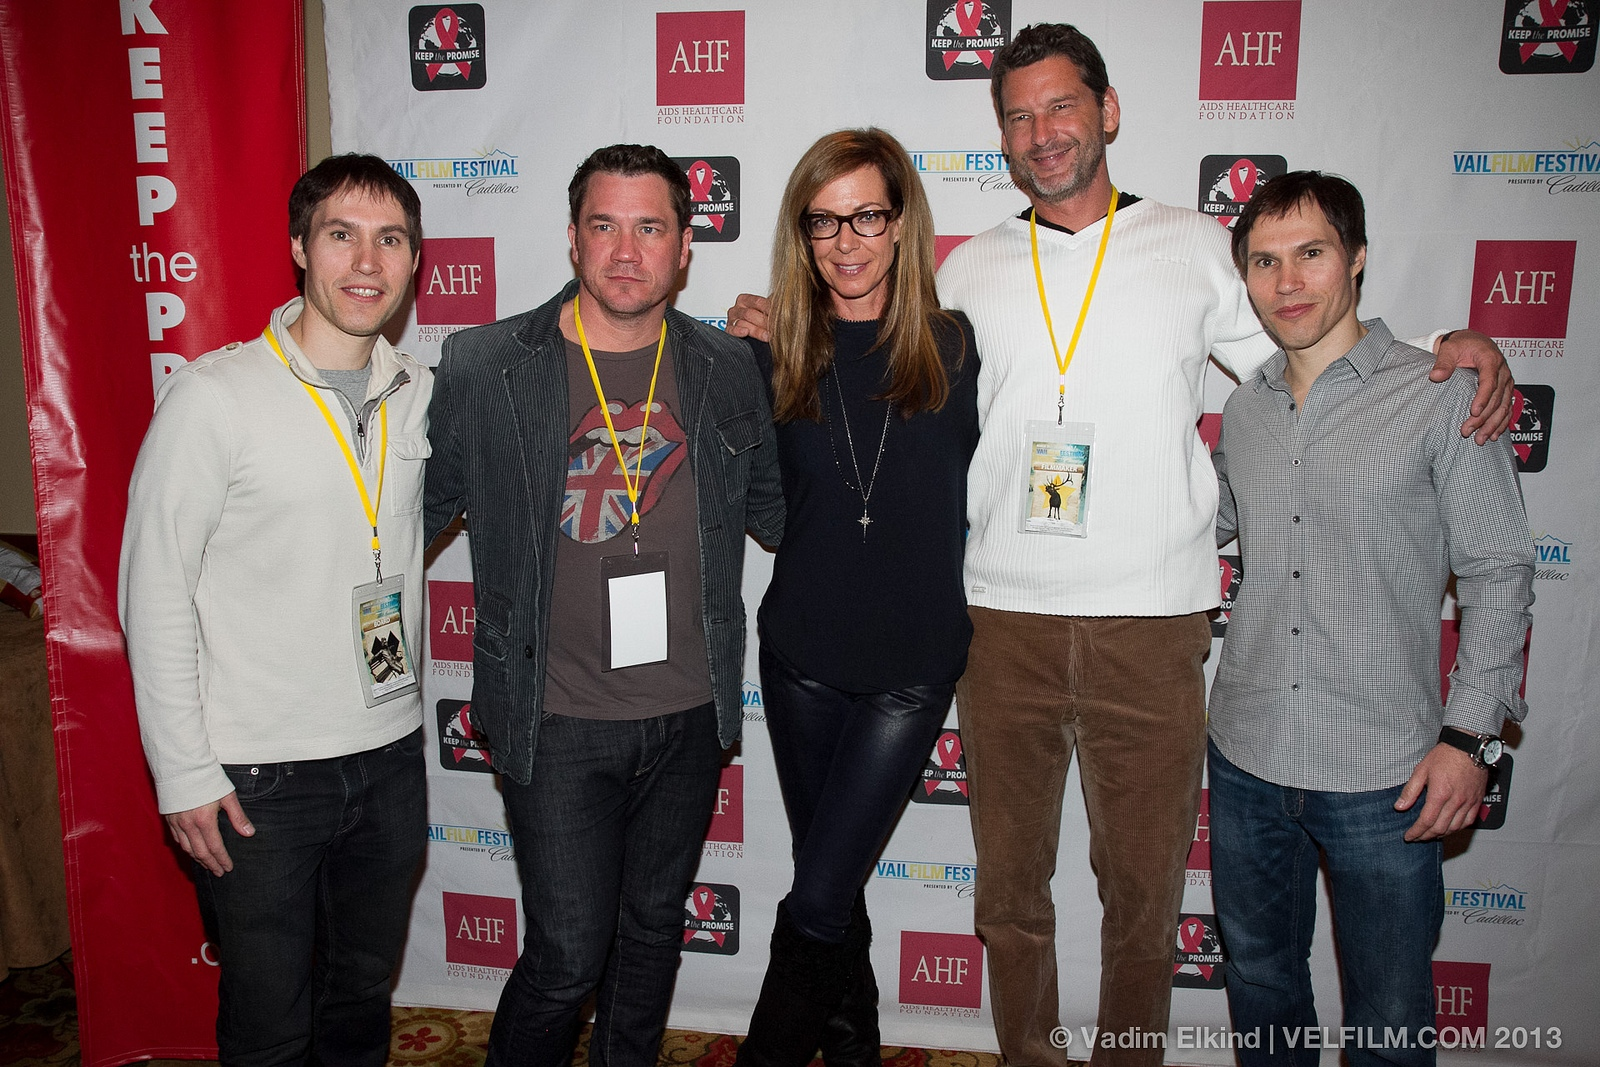 Sean-Cross, Tate-Taylor, Allison-Janney, producer, Scott-Cross.jpg